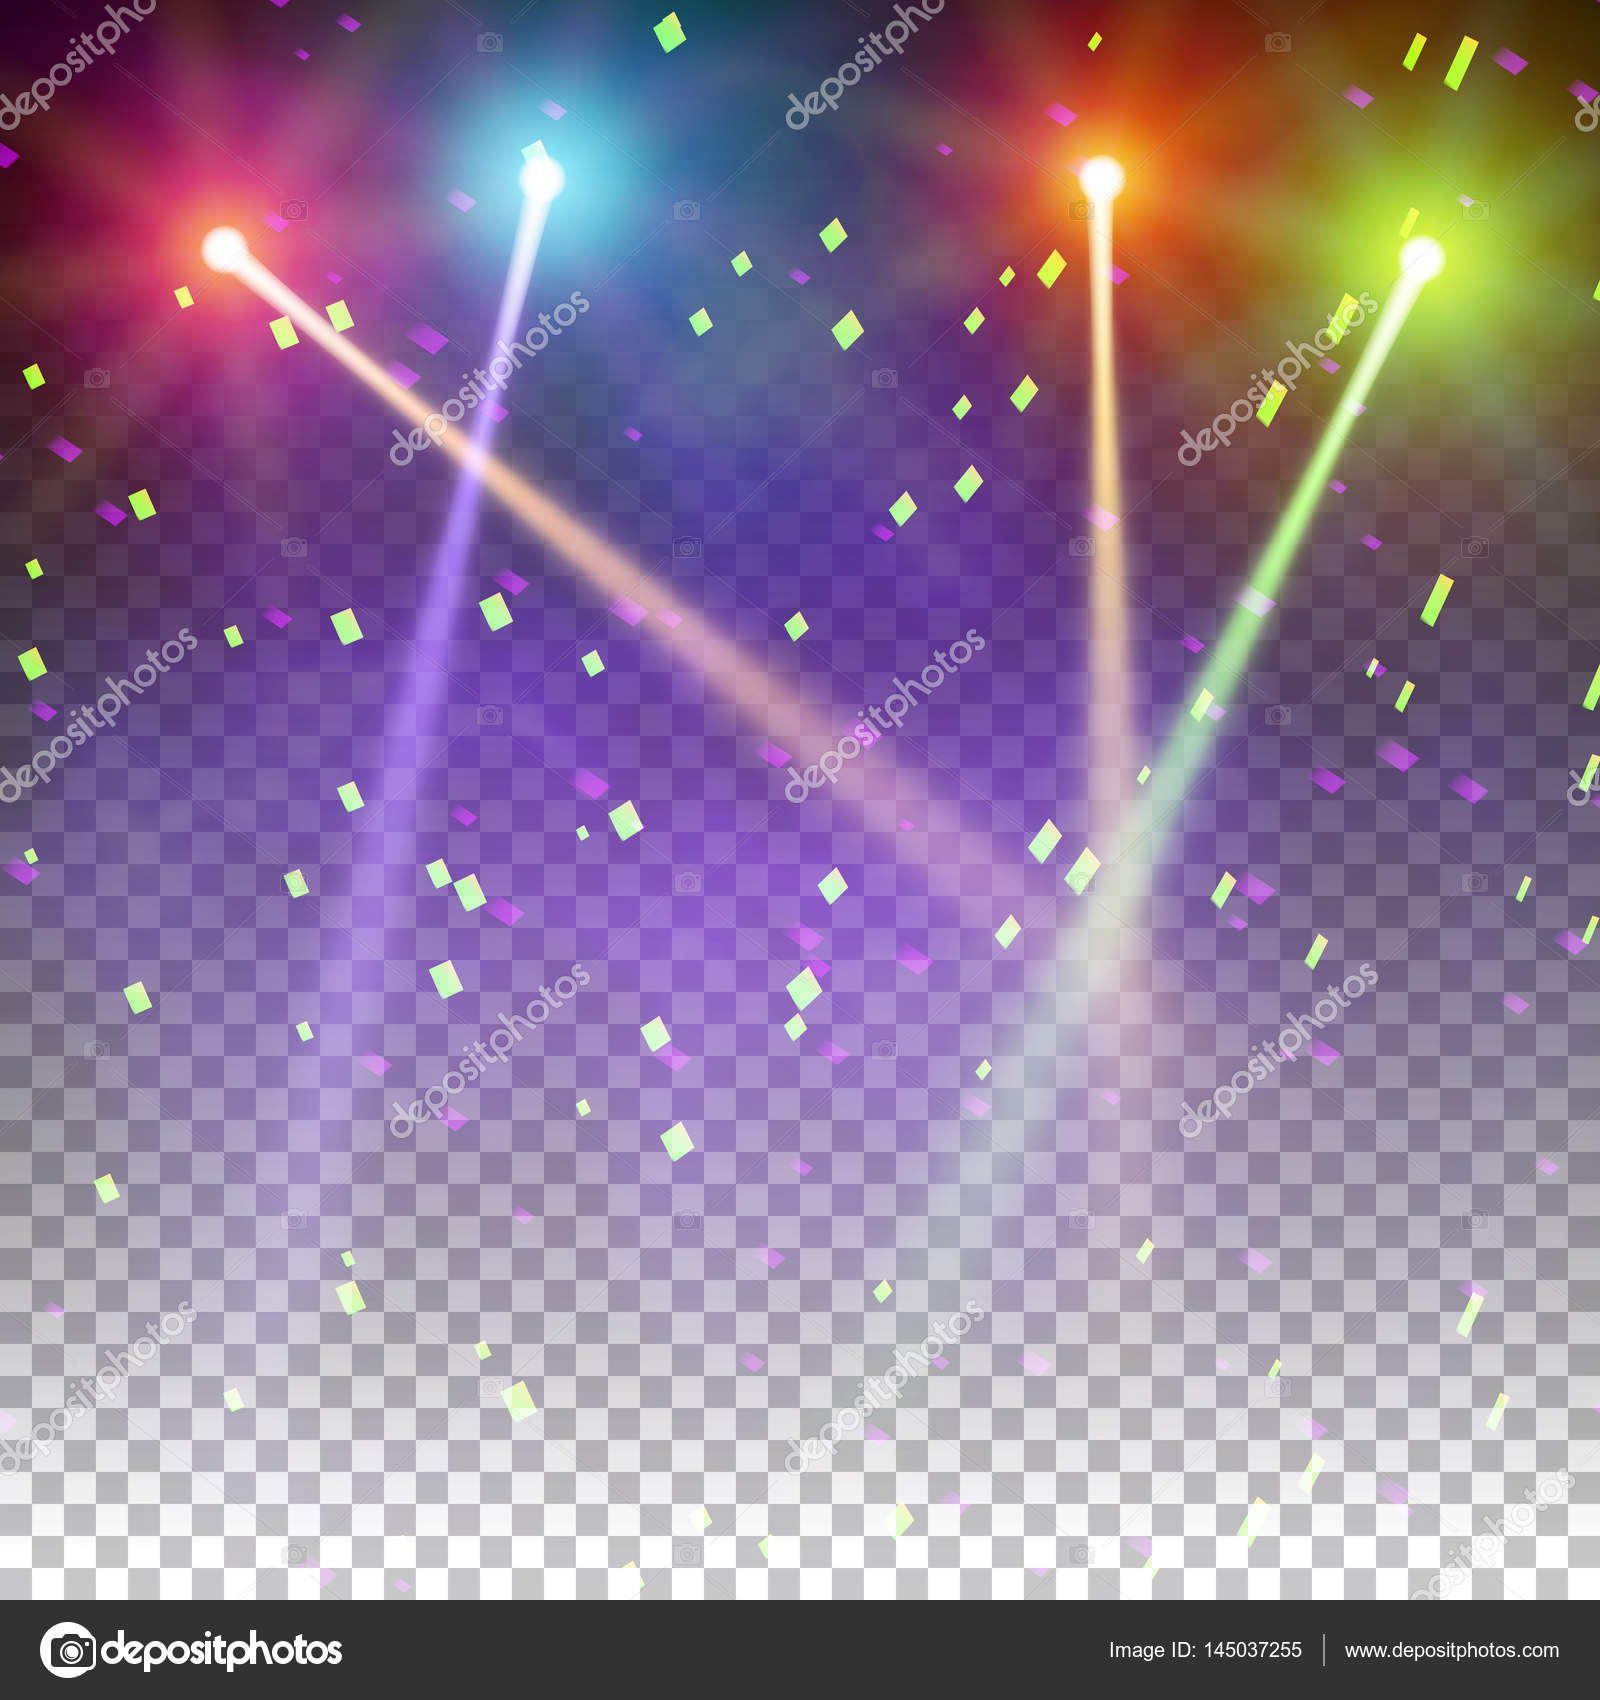 Special light effects. Realistic vector bright projectors for scene lighting isolated on plaid backdrop. & Special light effects. Realistic vector bright projectors for scene ...